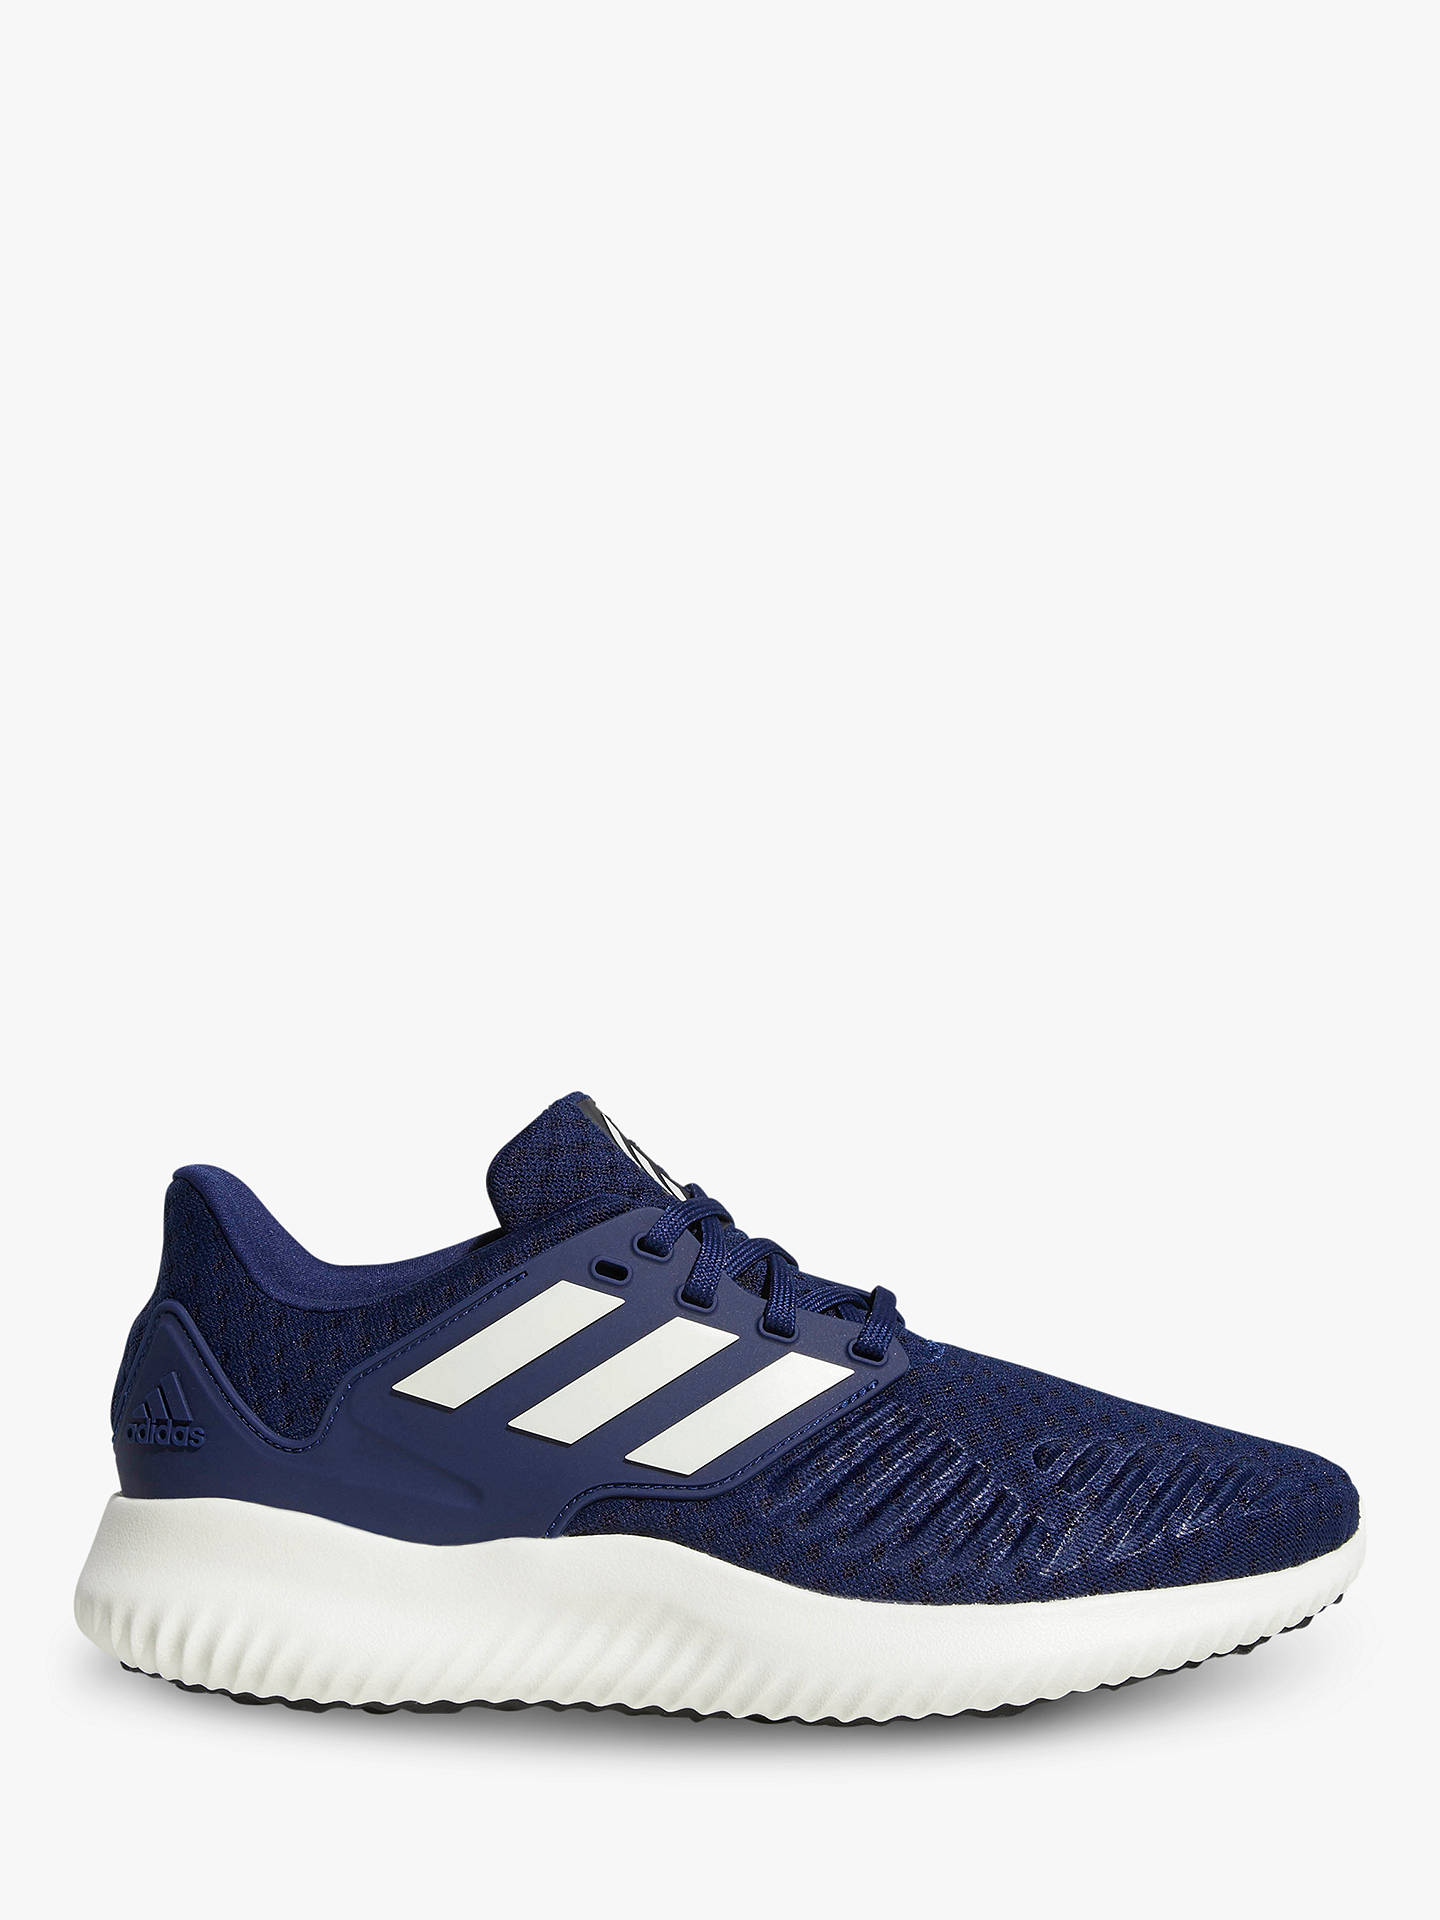 cc2733149 Buy adidas Alphabounce 2.0 Men s Running Shoes